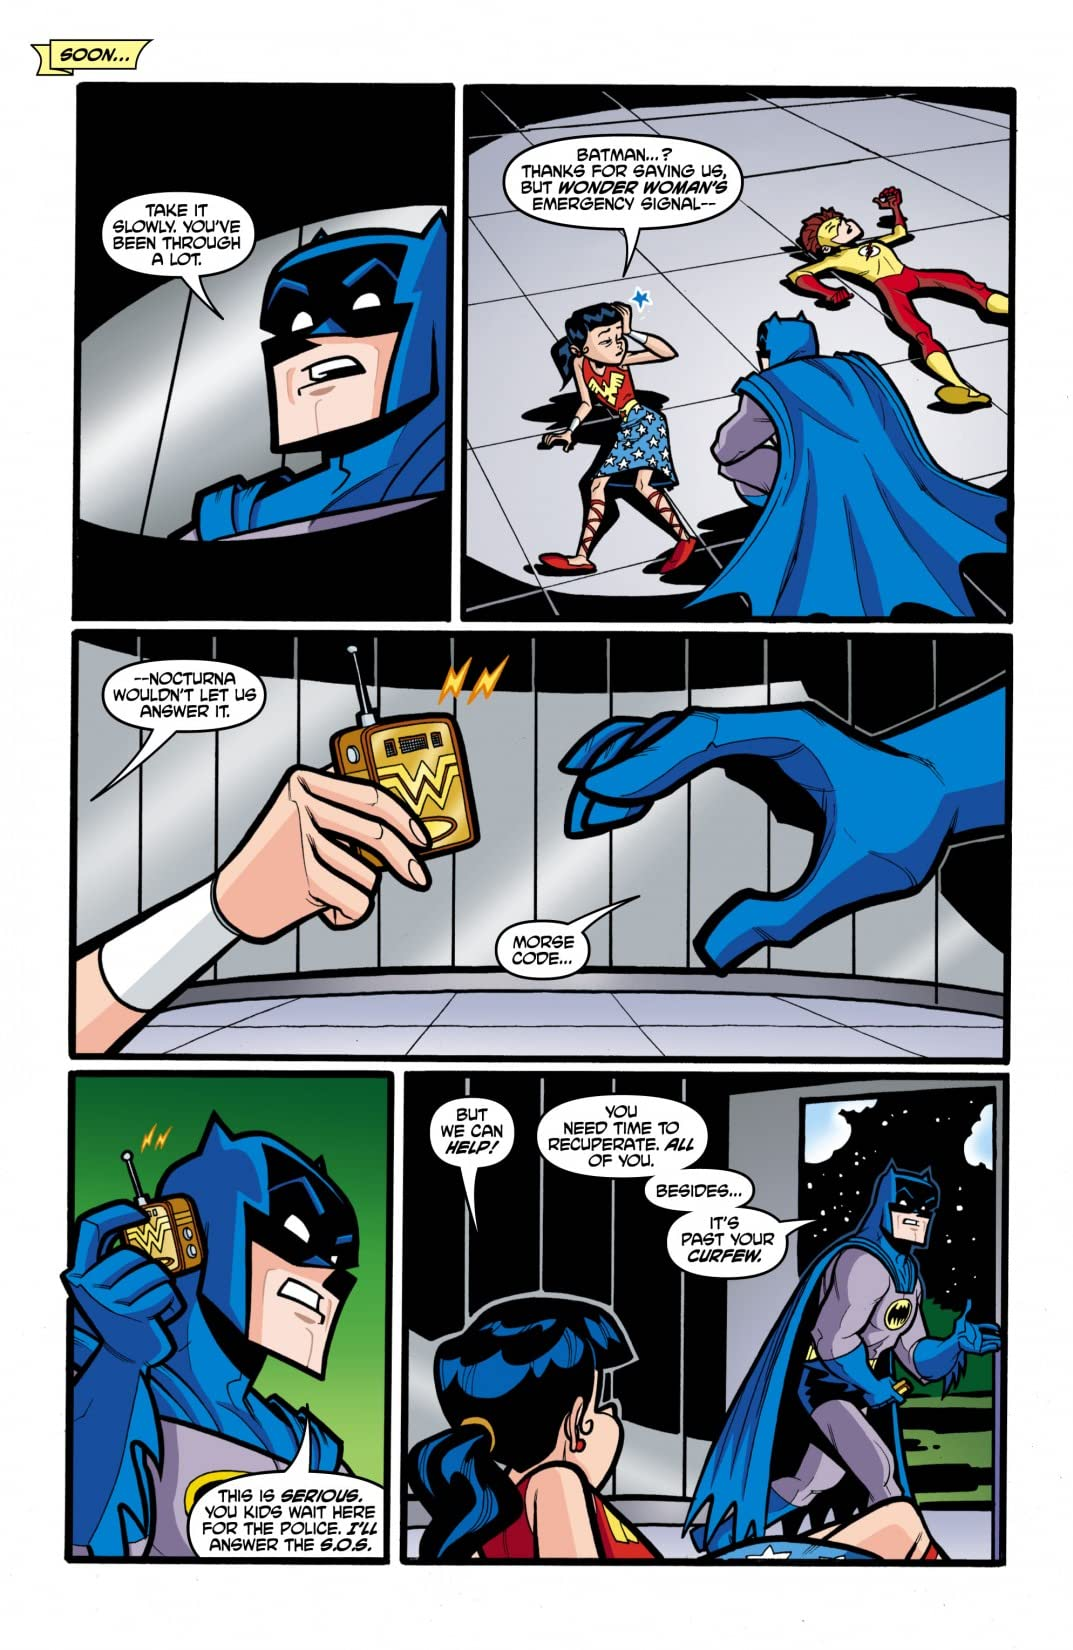 Batman: The Brave and the Bold #16